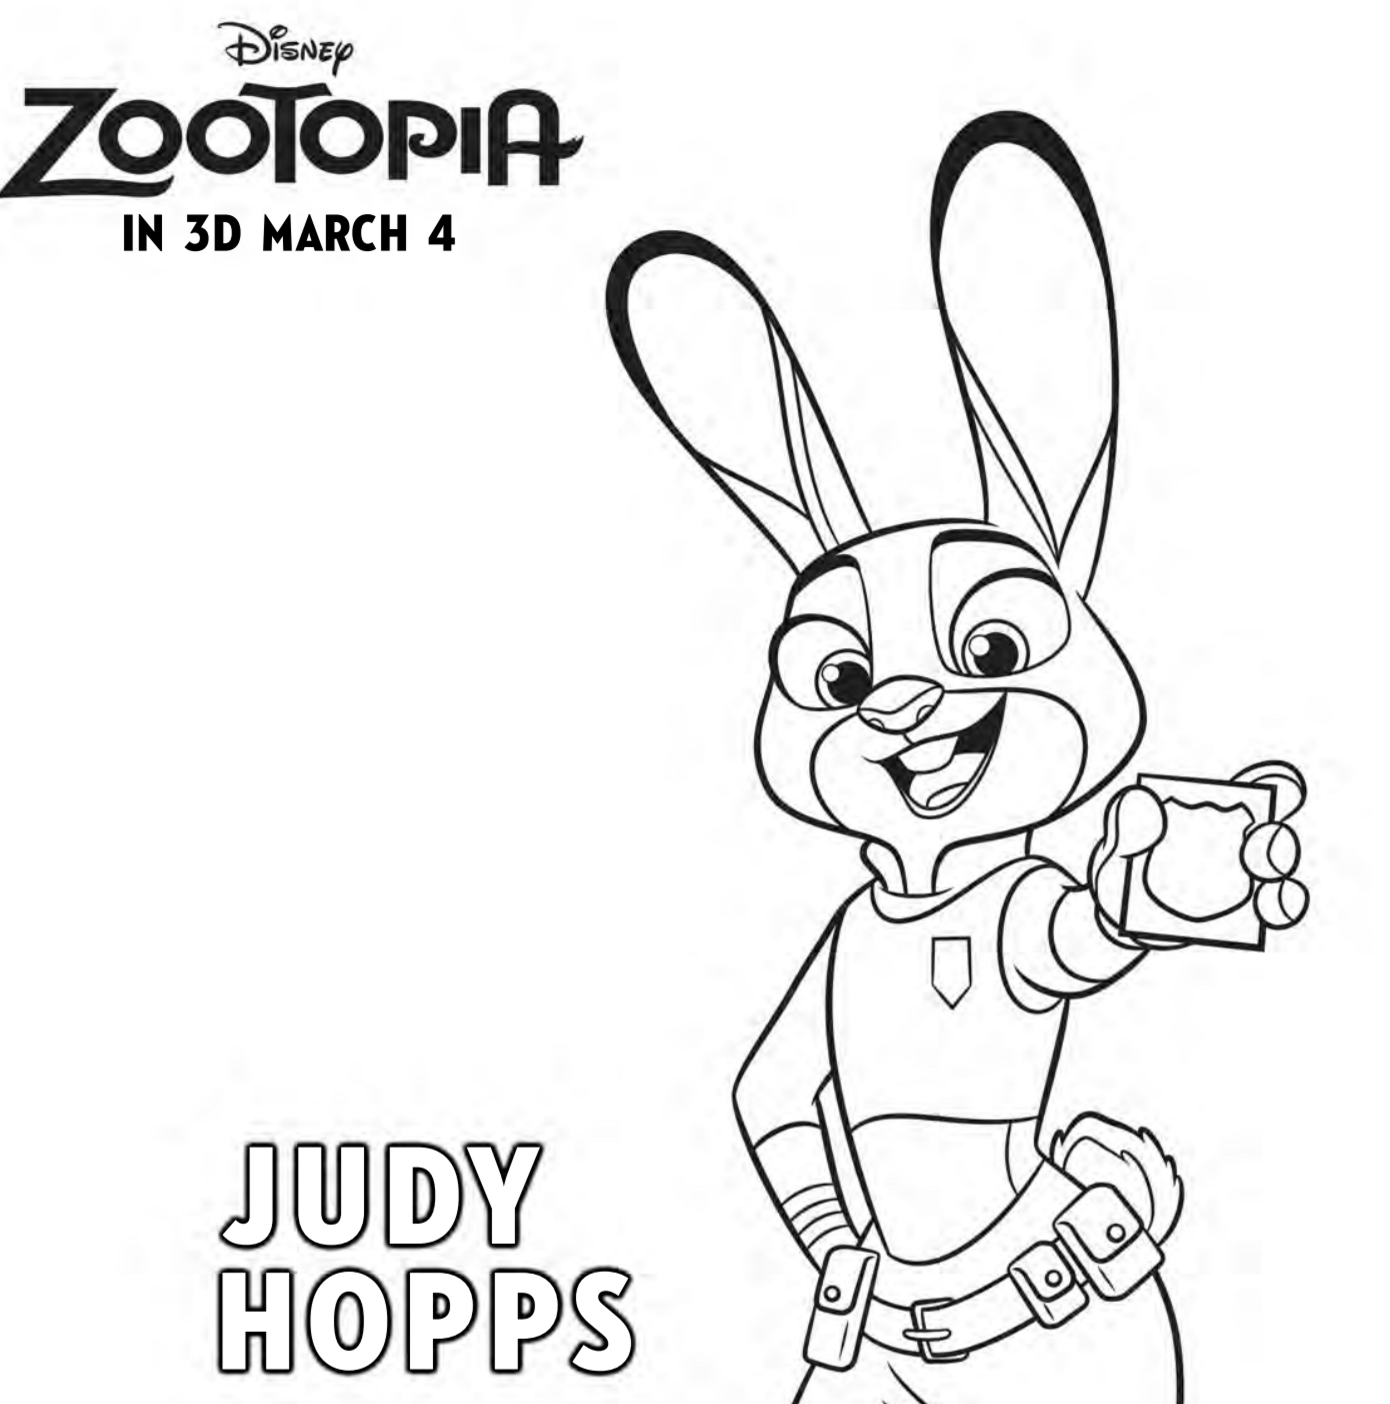 Zootopia Coloring Pages Free. Zootopia Coloring Pages  Judy Hopps coloring page Free Printables For The Kids